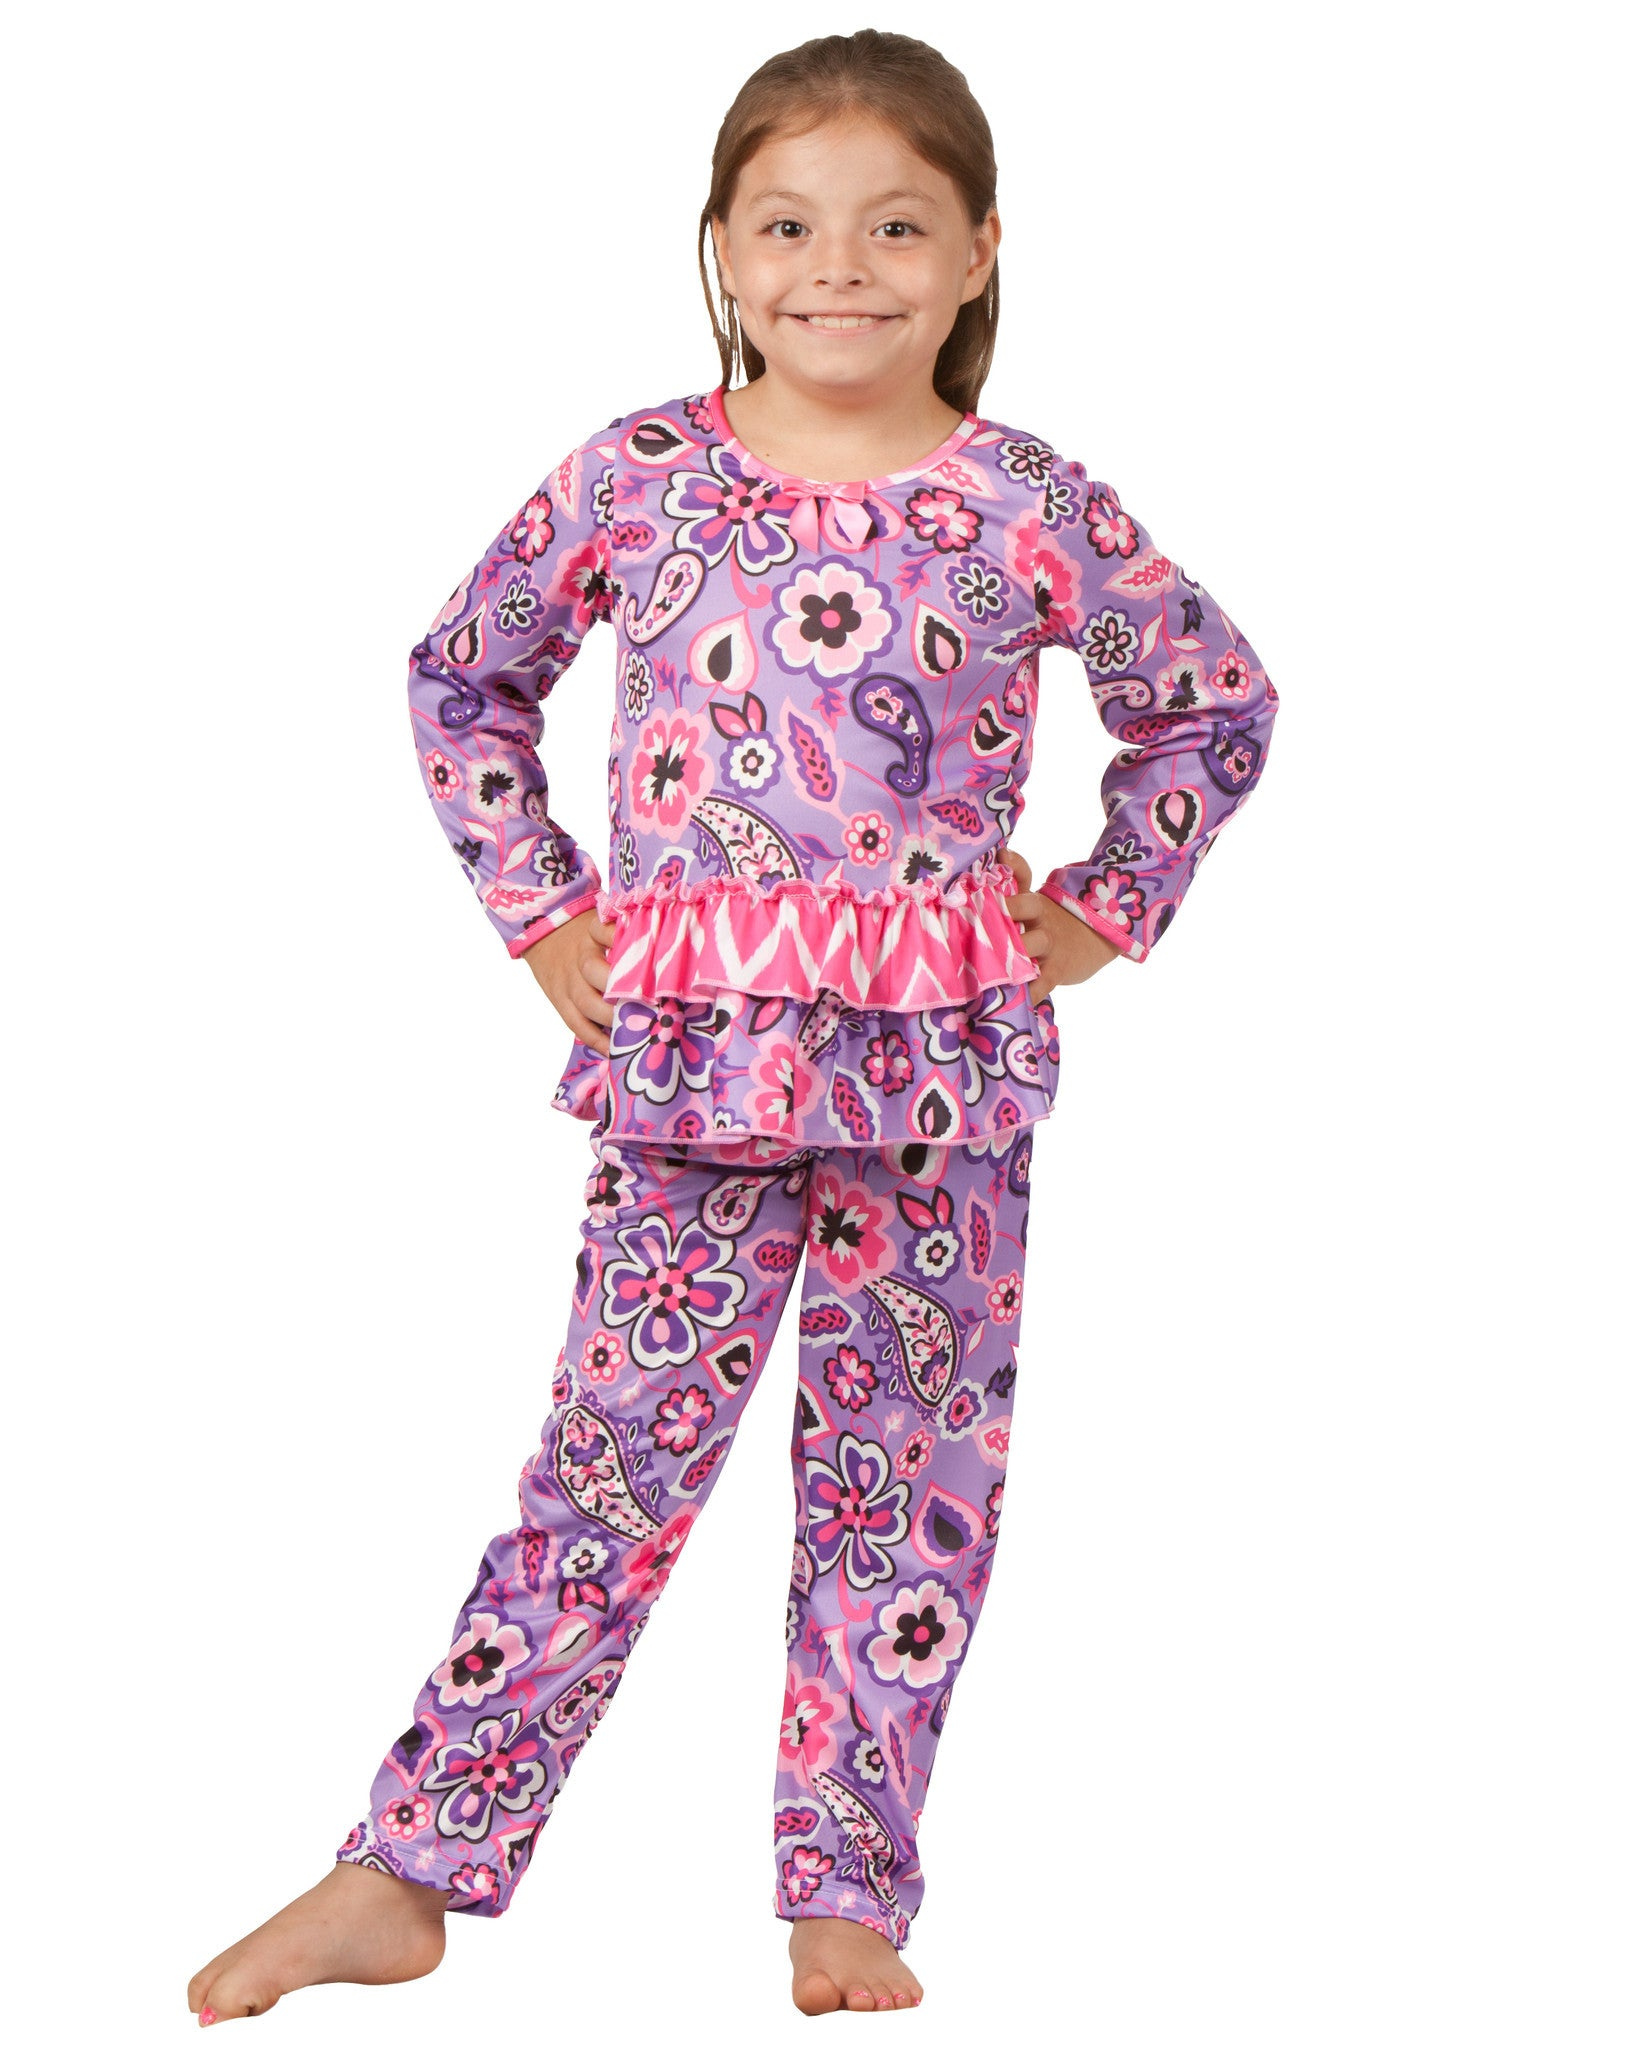 Laura Dare Pop Star Long Sleeve PJ